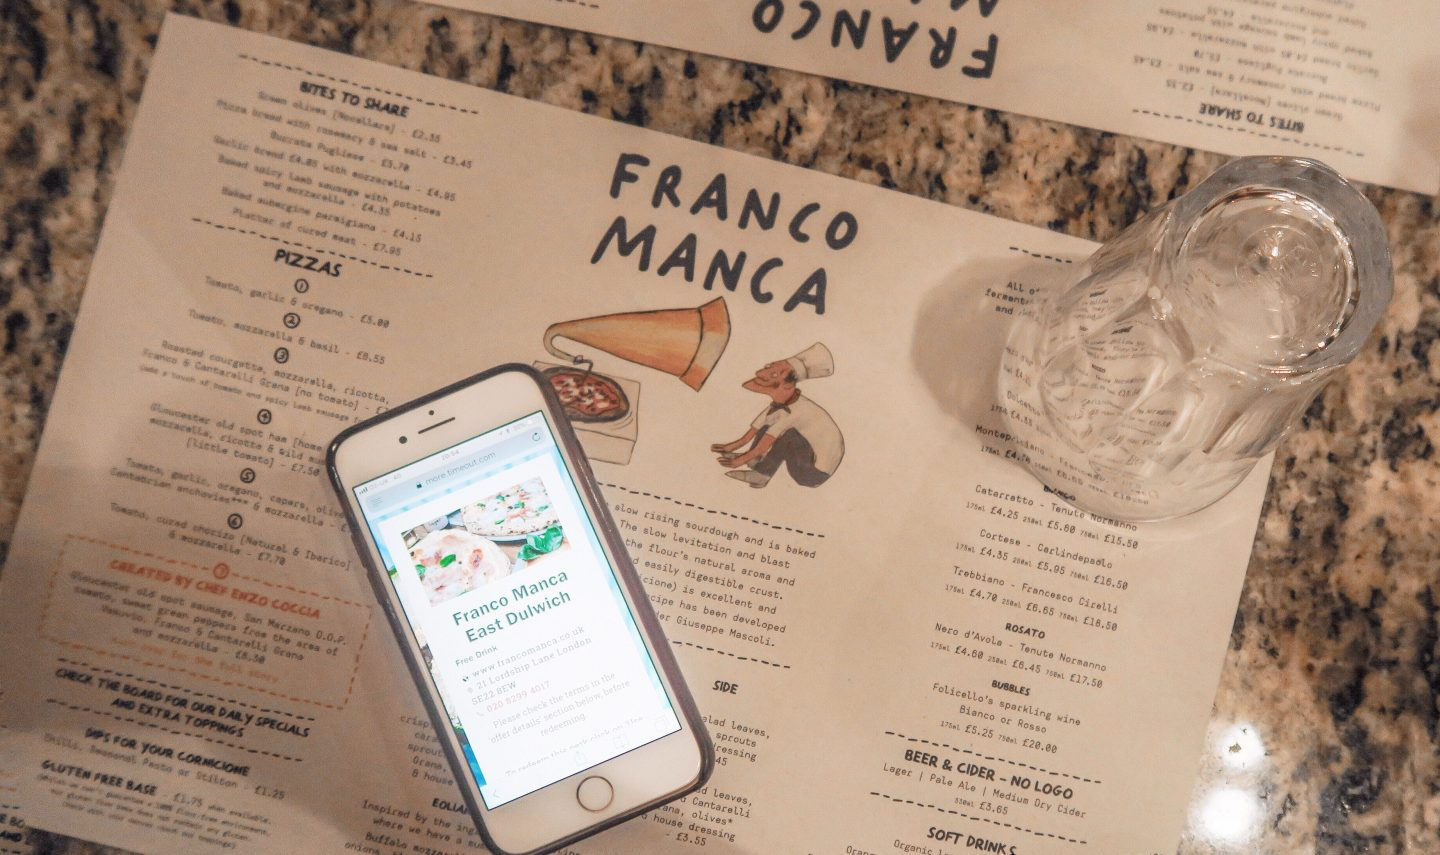 Franco Manca menu with a time out more digital card on francescasophia.co.uk